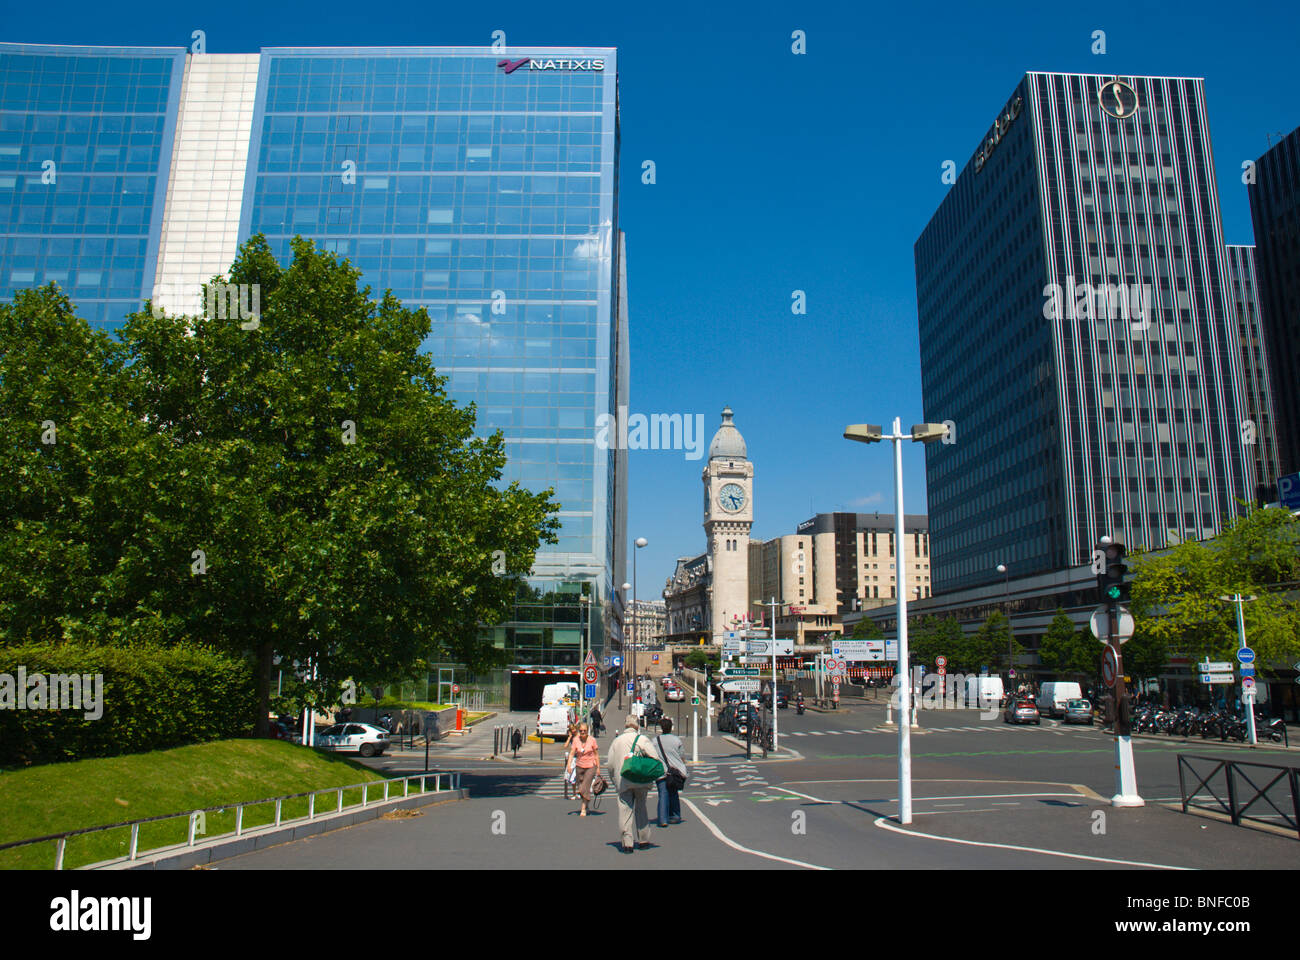 Bercy district central Paris France Europe - Stock Image